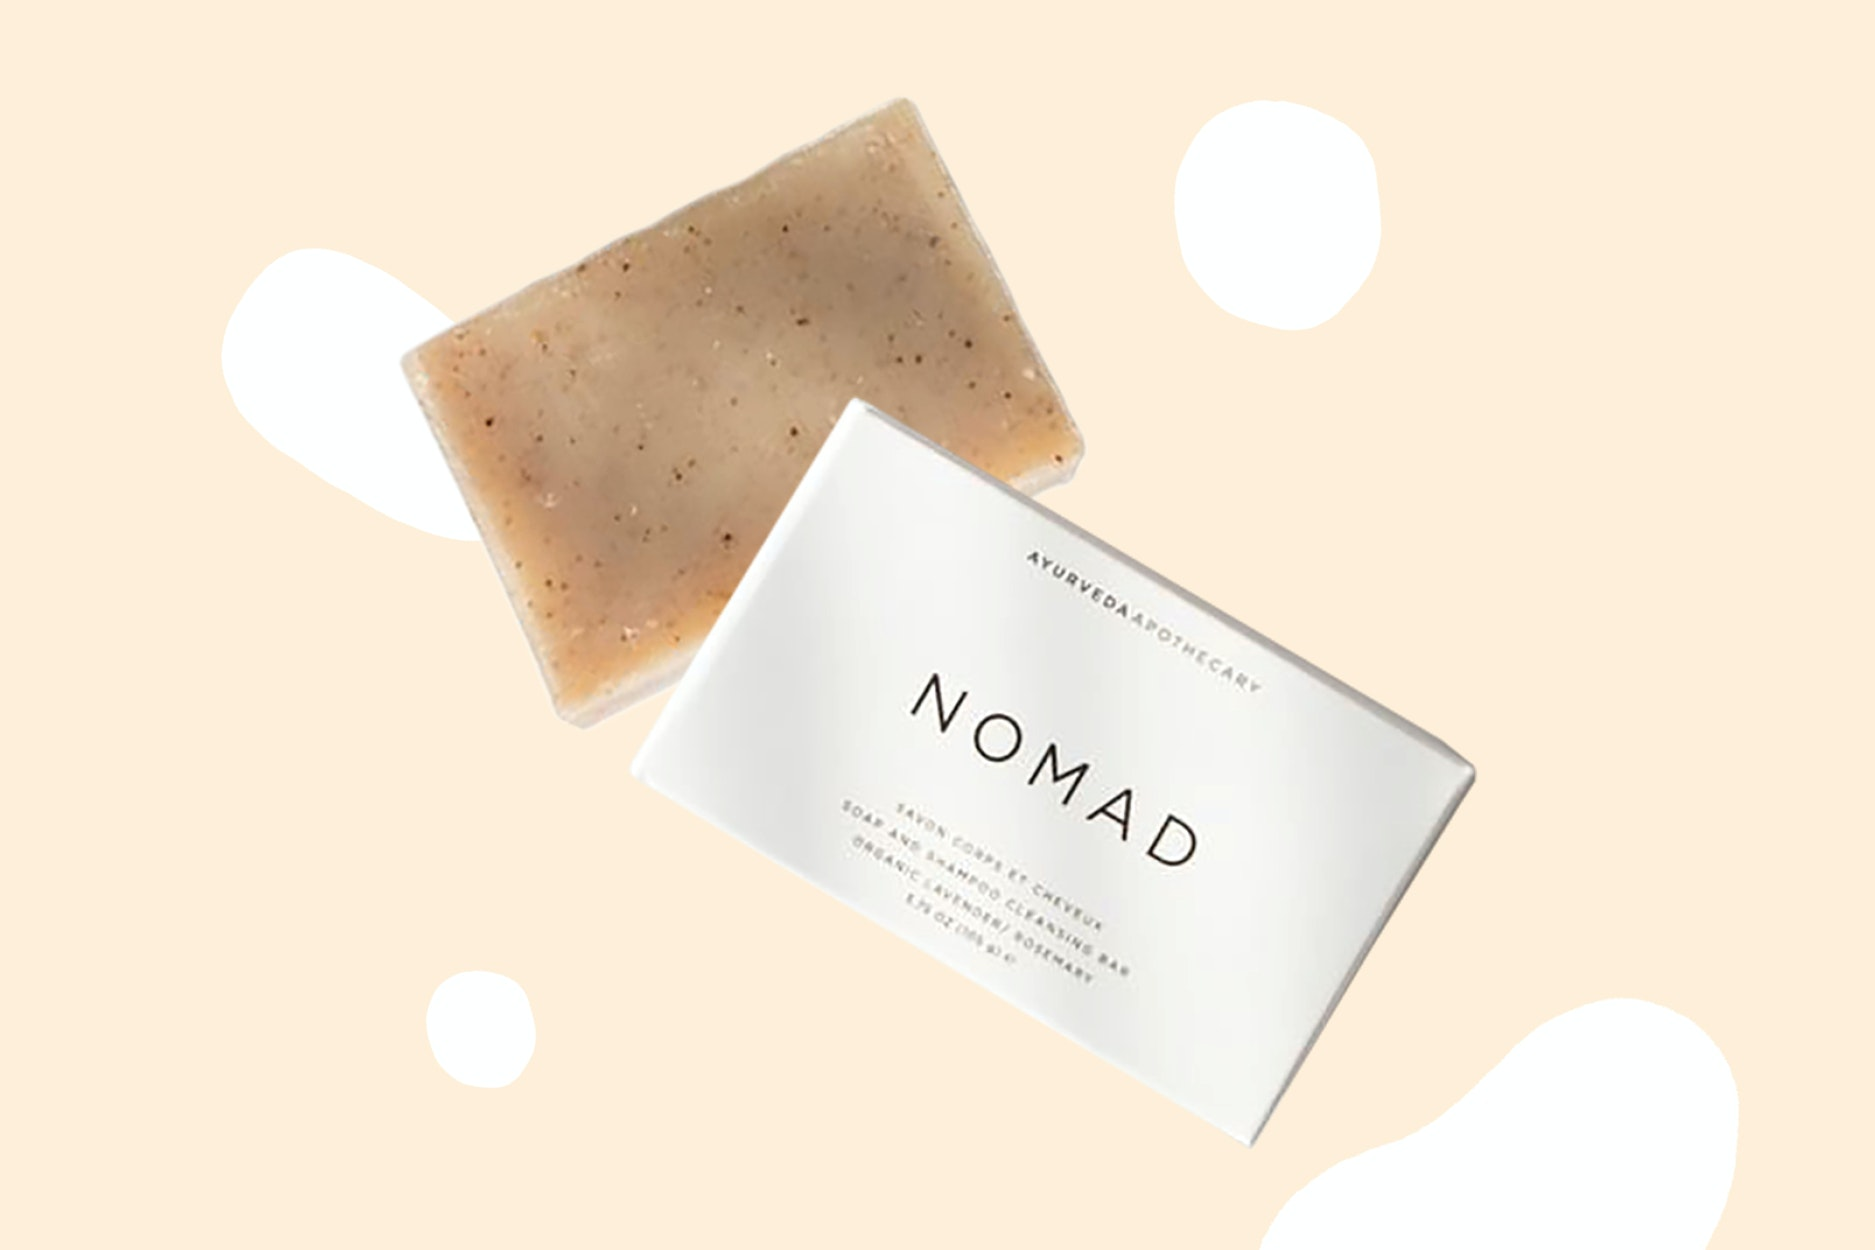 Nomad cleaning bar can serve as soap or shampoo.